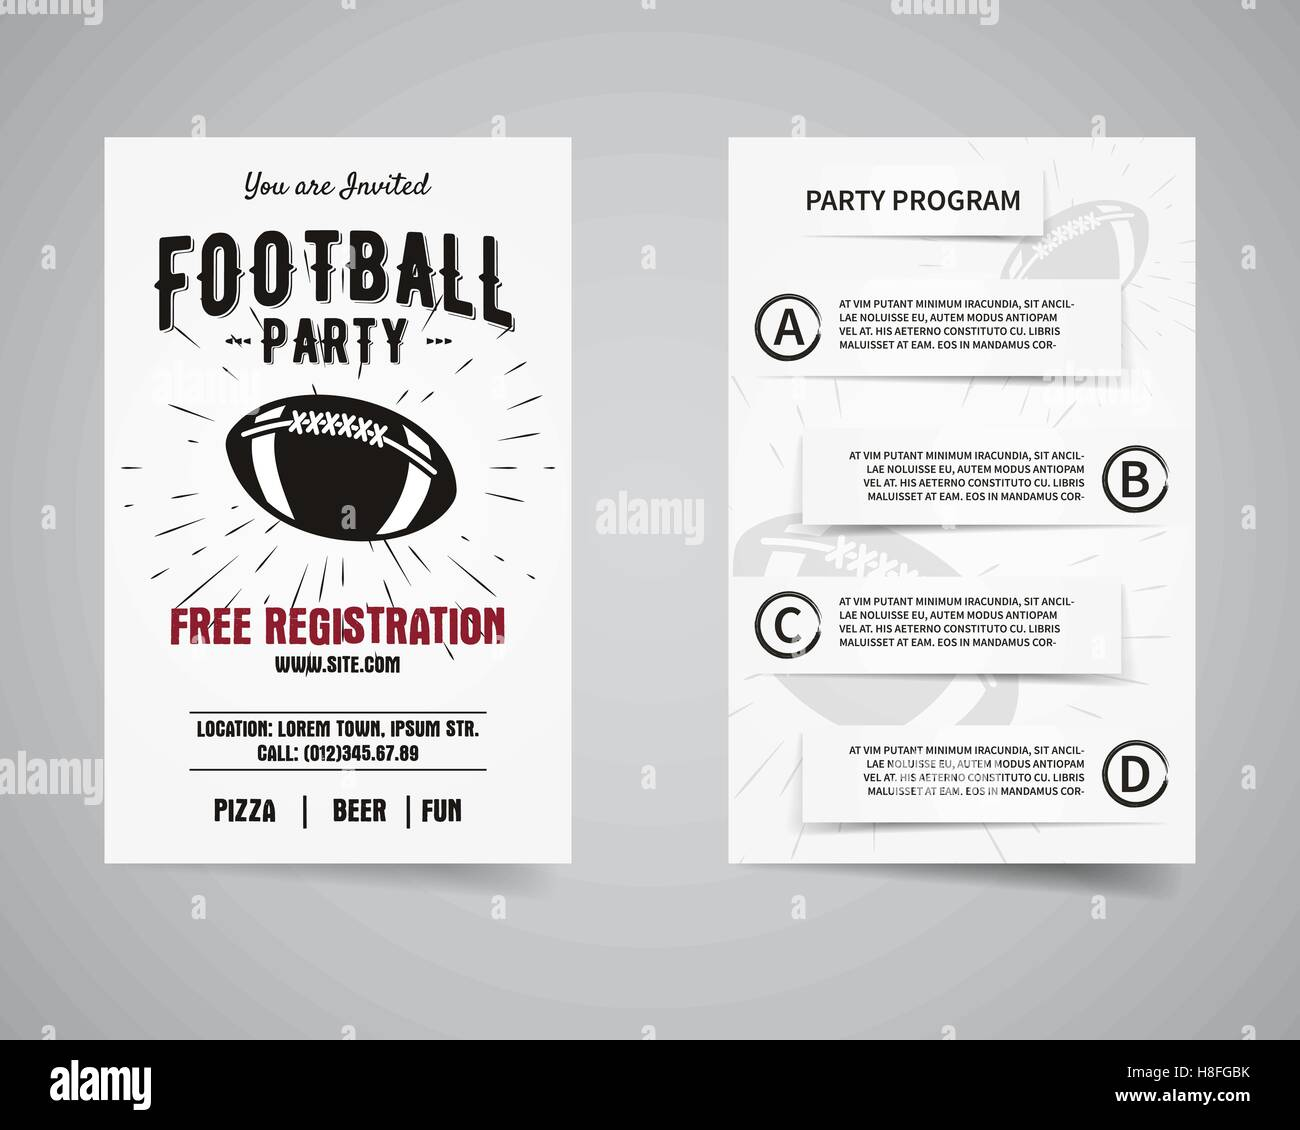 American Football Party Back And Front Flyer Template Design Stock